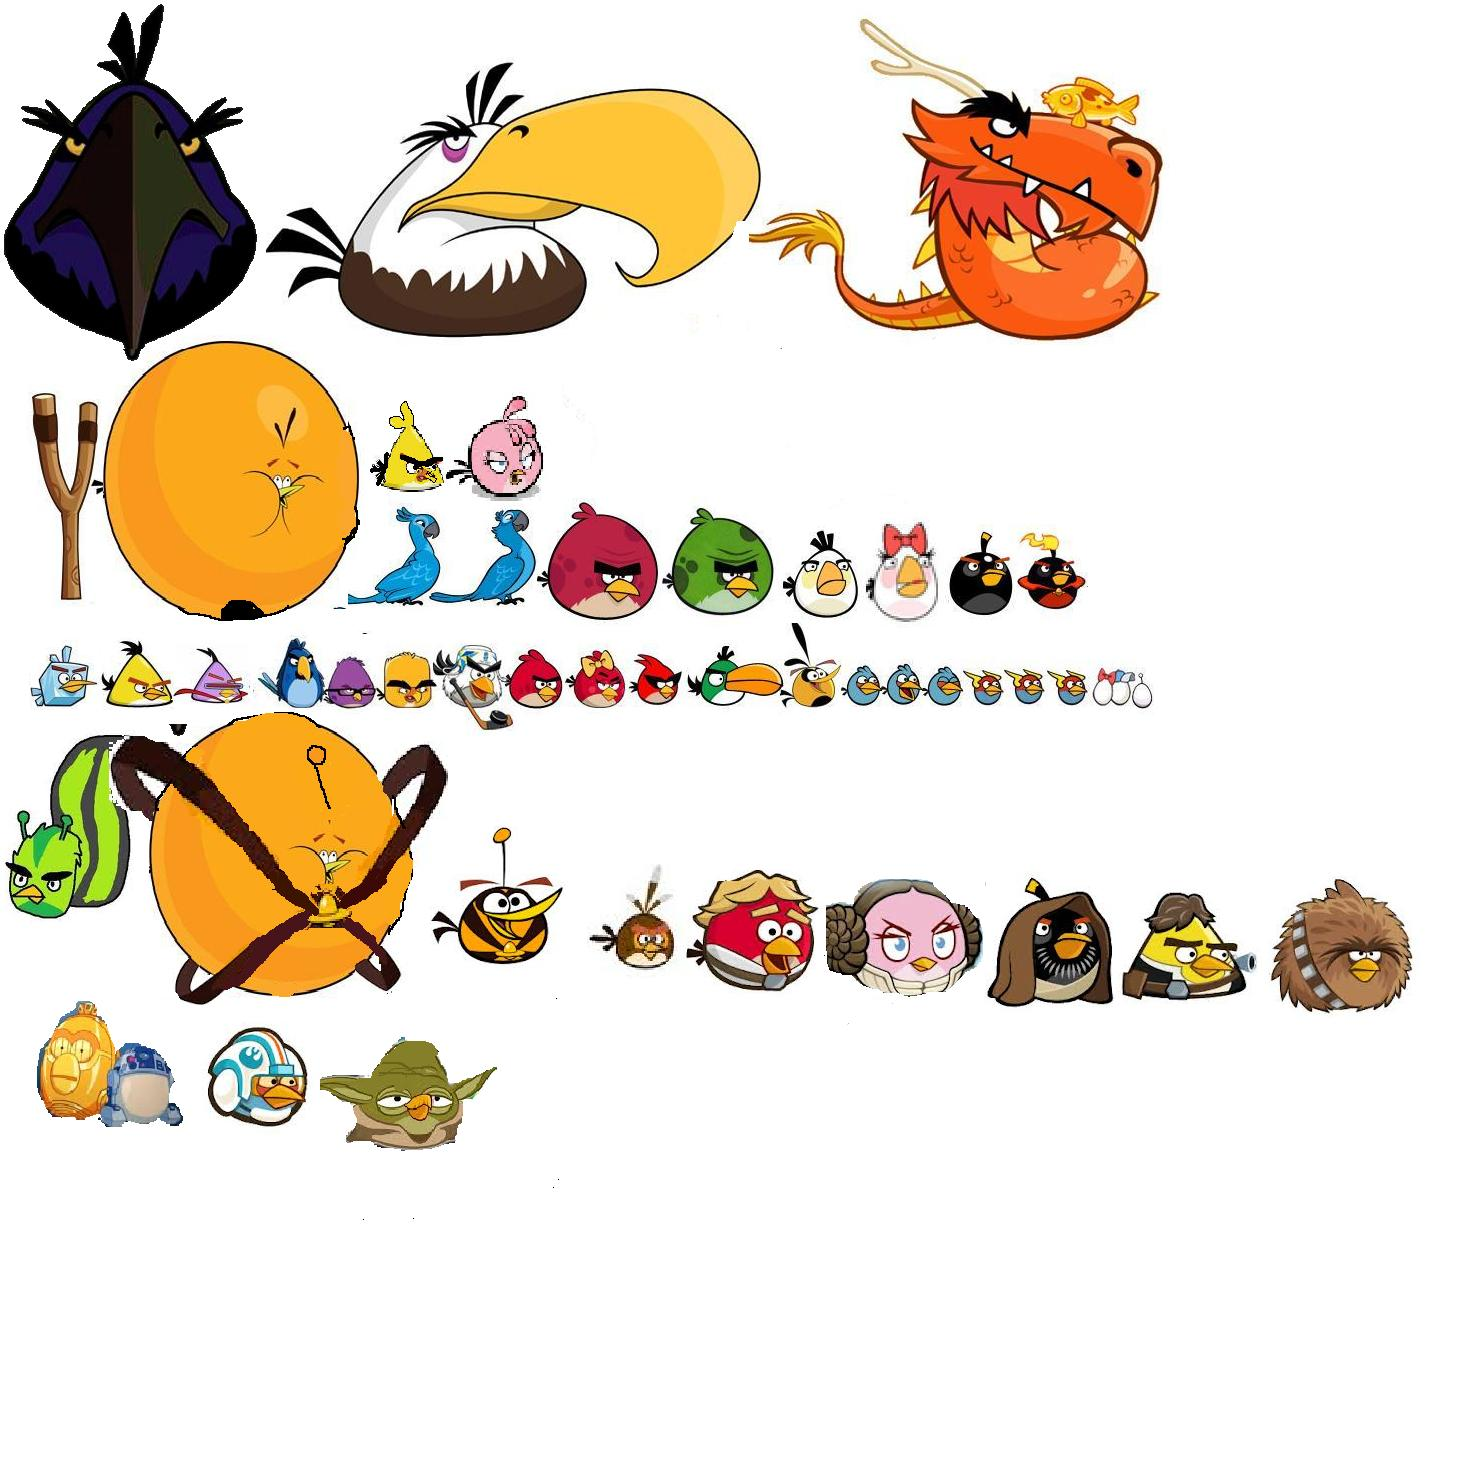 how to draw angry birds star wars 2 all characters